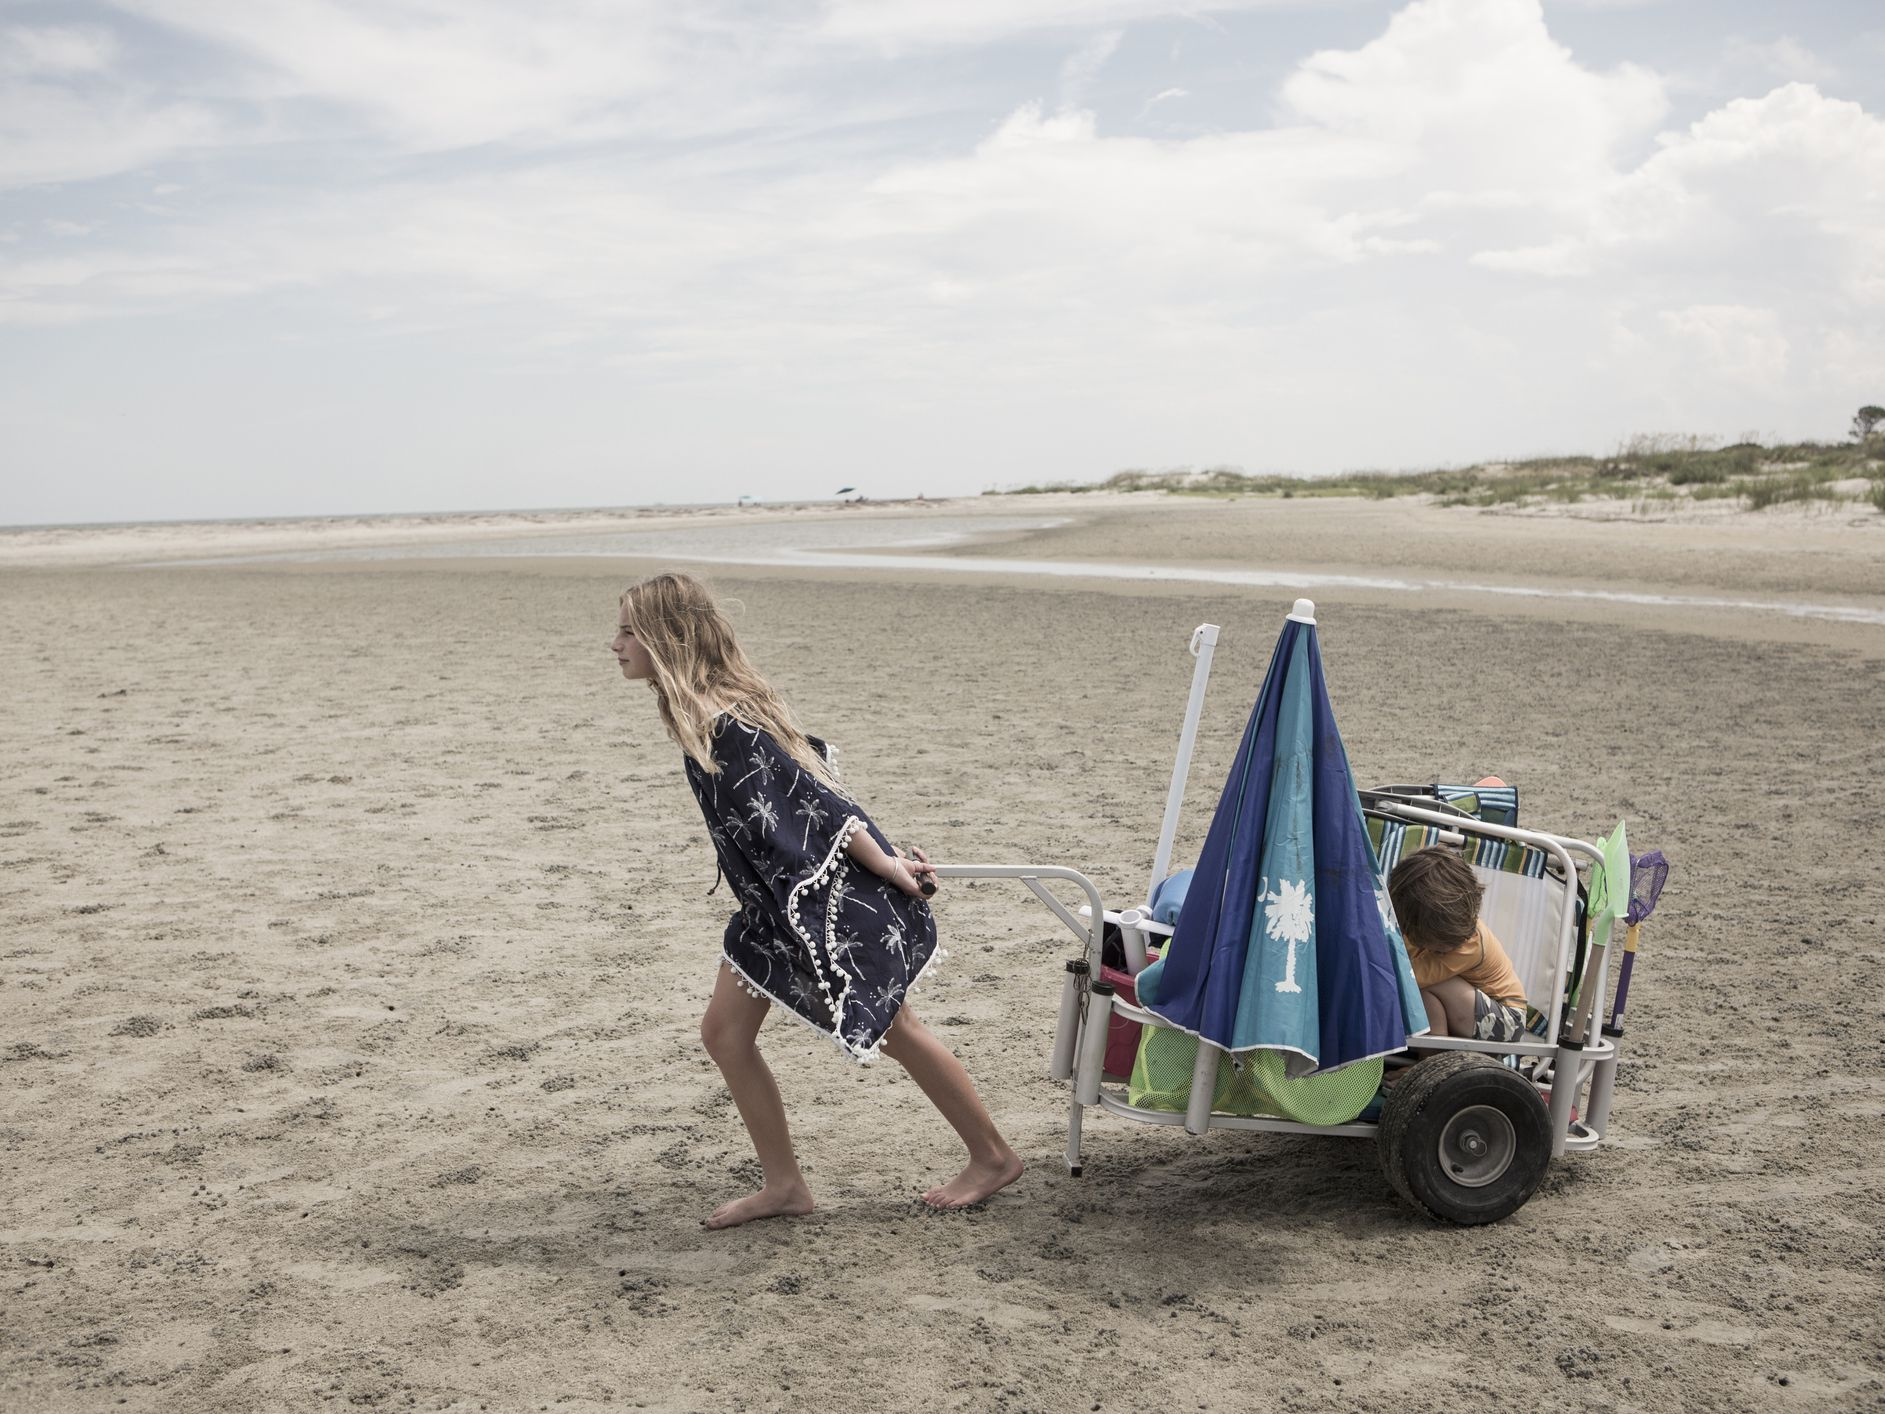 528a259c71d1 The 6 Best Beach Wagons of 2019